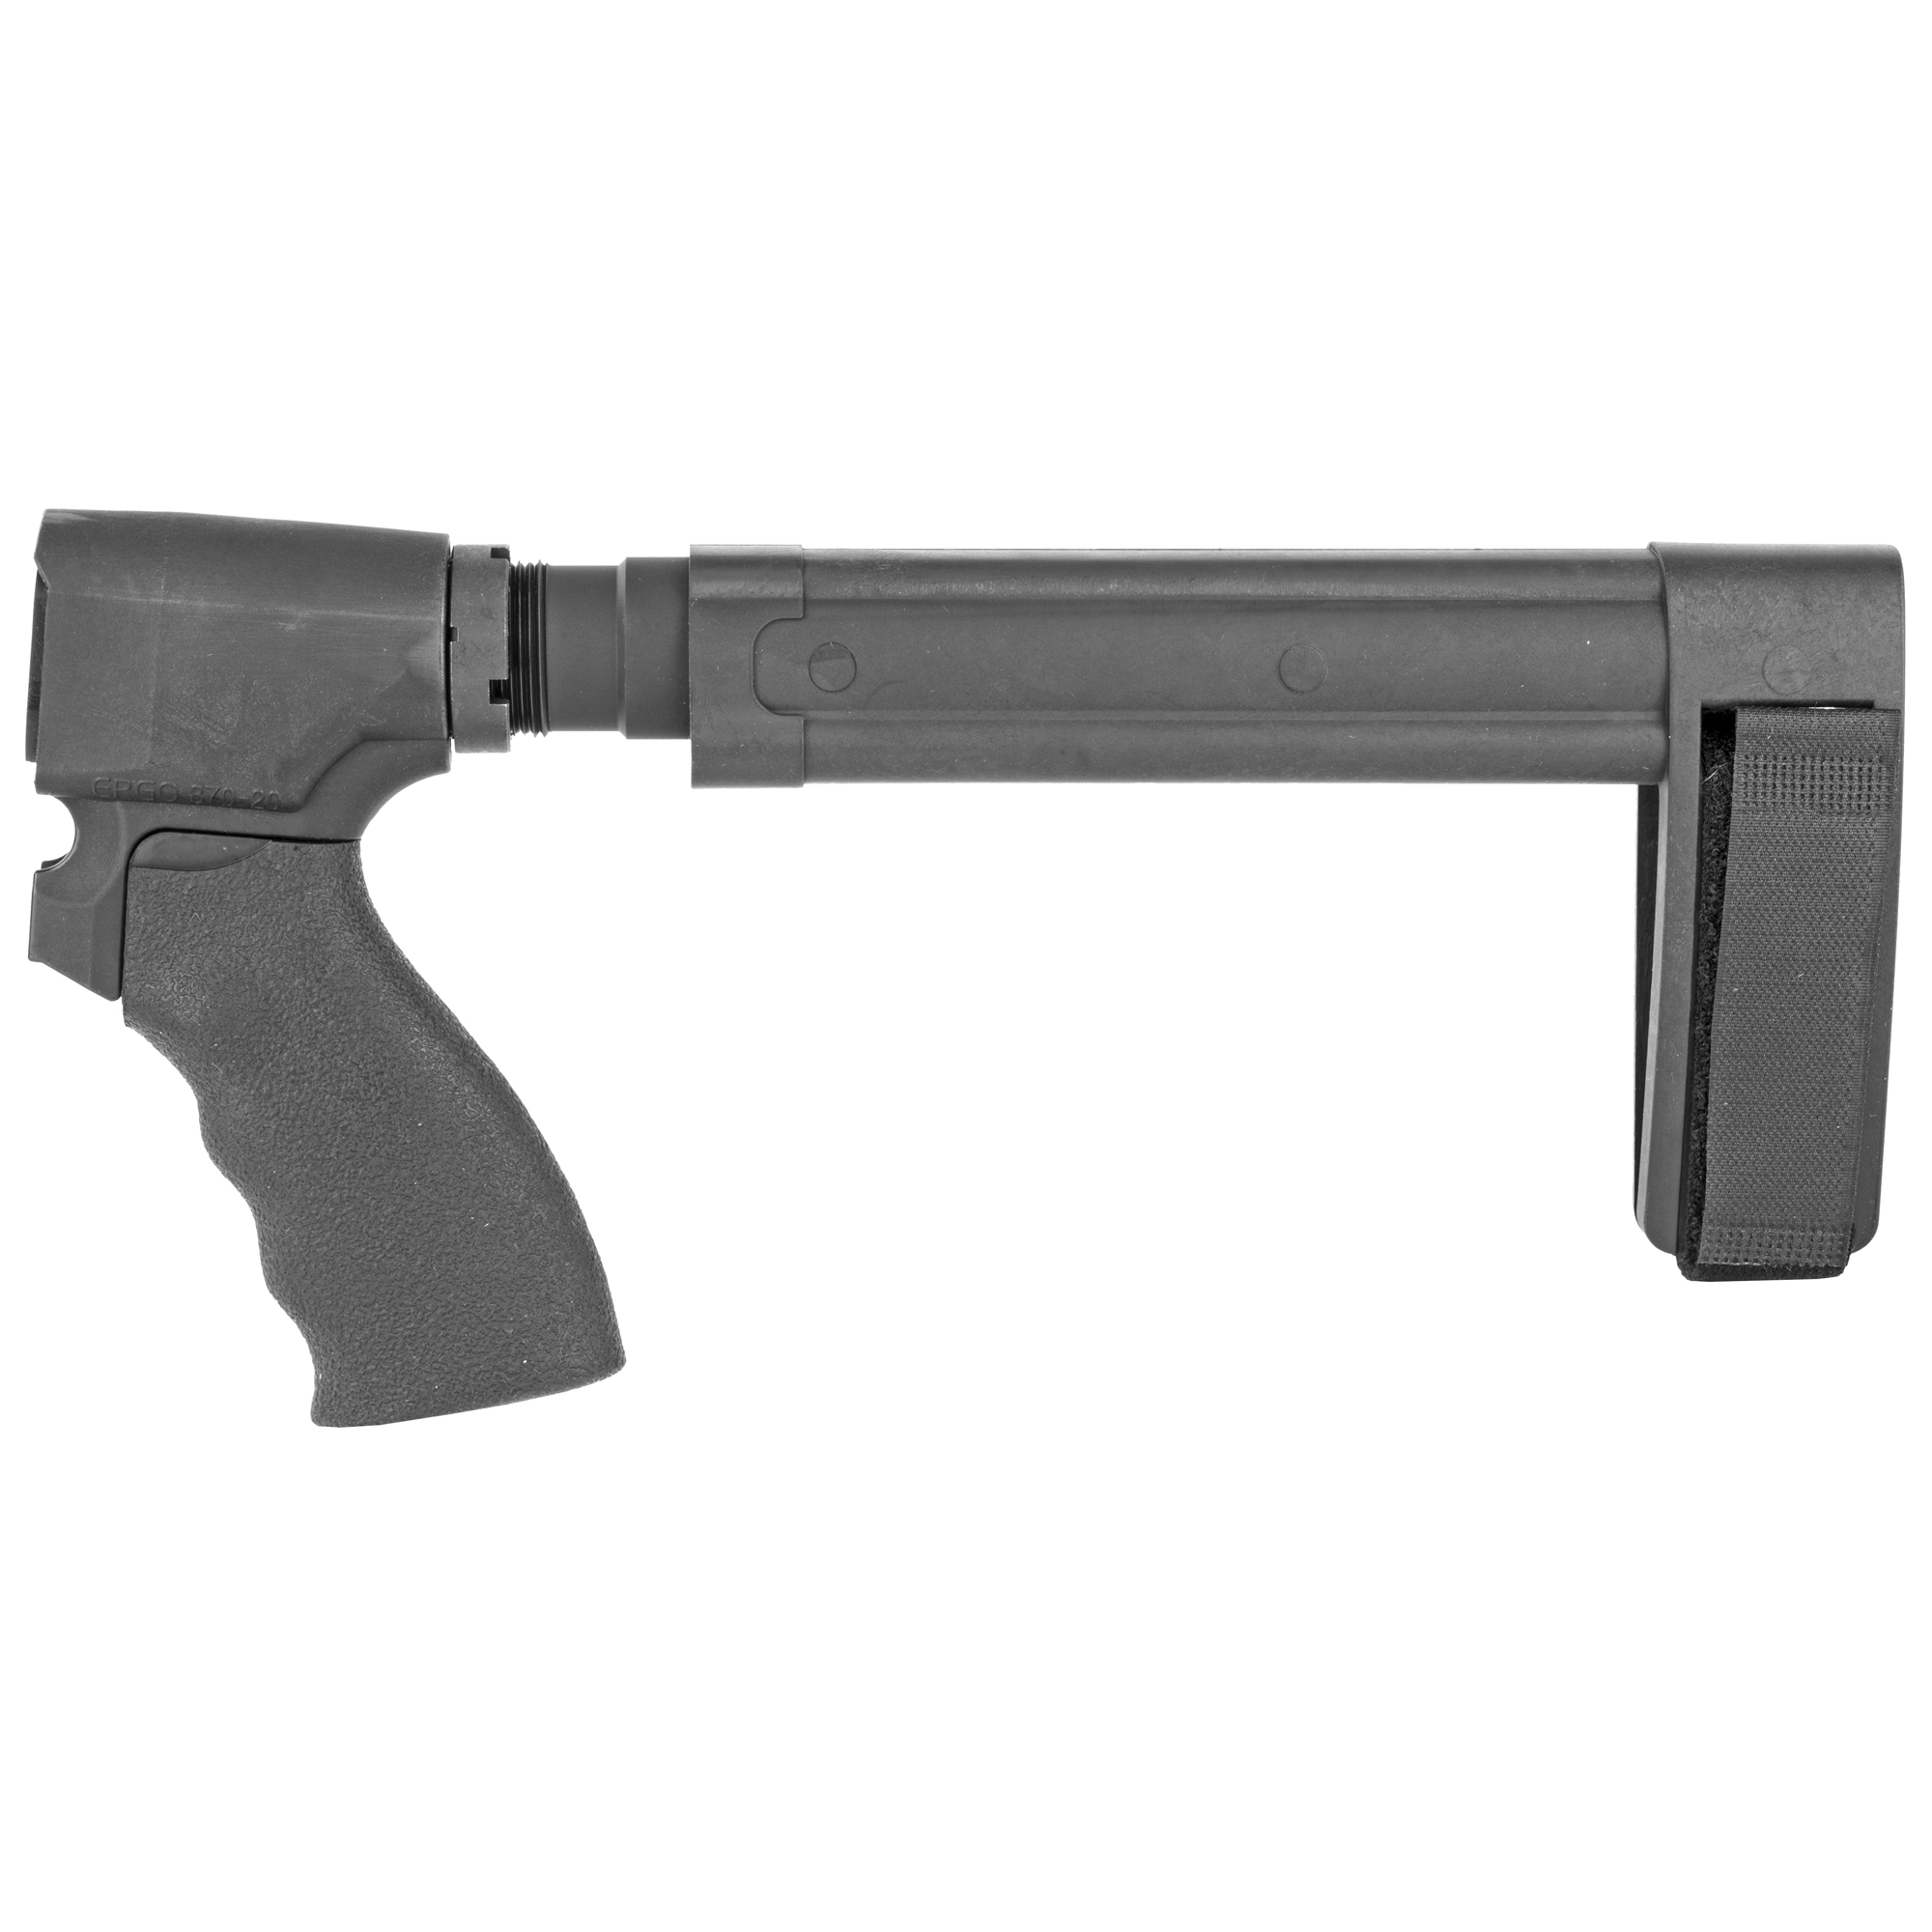 """A complete kit"""" ready-to-assemble on your Remington Tac-14"""" greatly enhancing the usability of the firearm by adding a third point of contact for stabilization. This is a 20 gauge kit which includes the following-SBL Pistol stabilizing brace"""" STOT-C pistol receiver extension"""" Ergo flat top Suregrip"""" Ergo Remington 870 adapter"""" castle nut and adjustable nylon strap."""